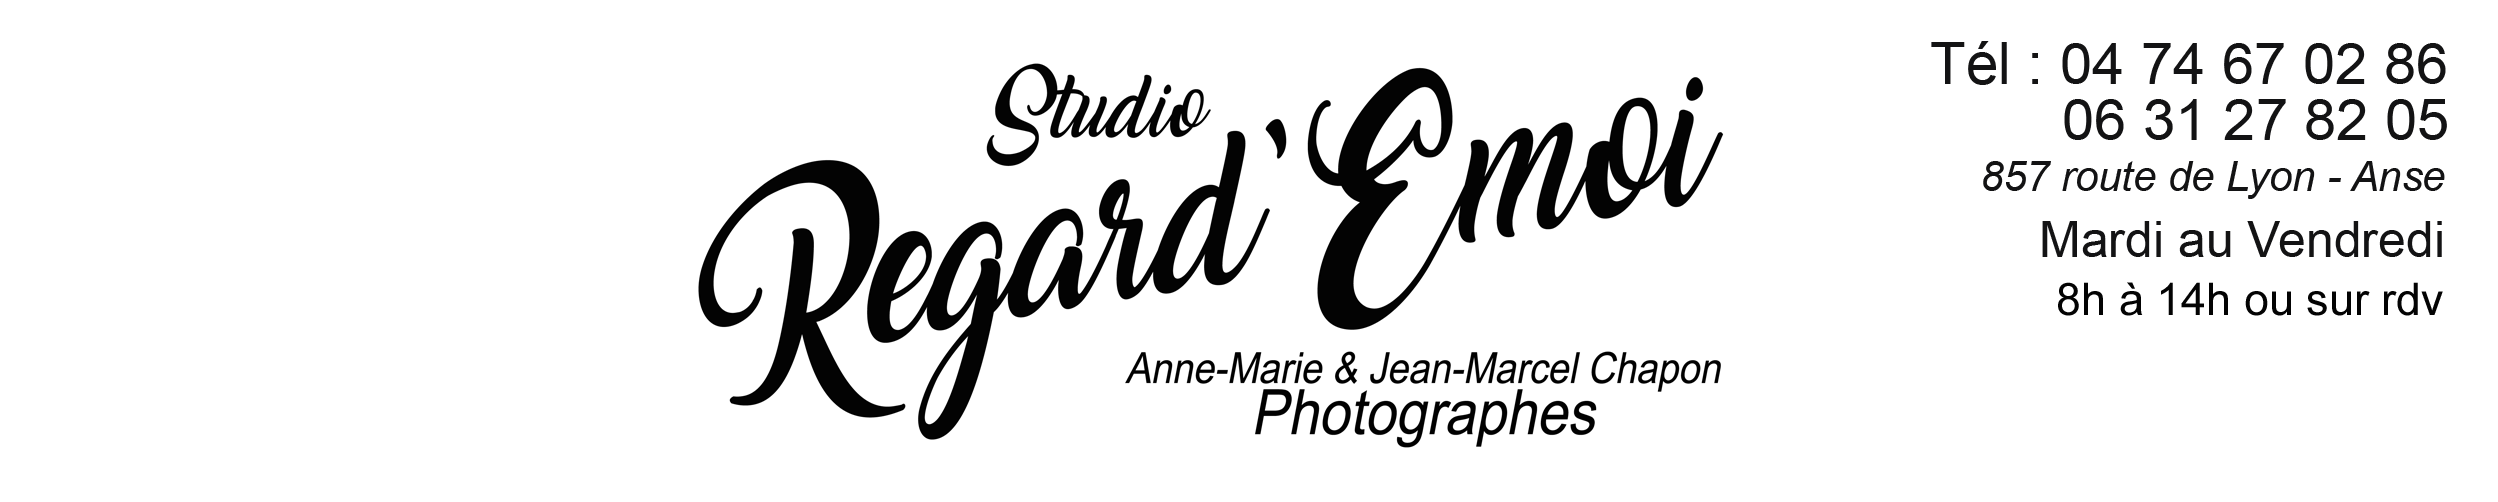 Photographe Anse Studio REGARD EMOI Photographe Mariage Portrait Scolaire Studio Photo 69480